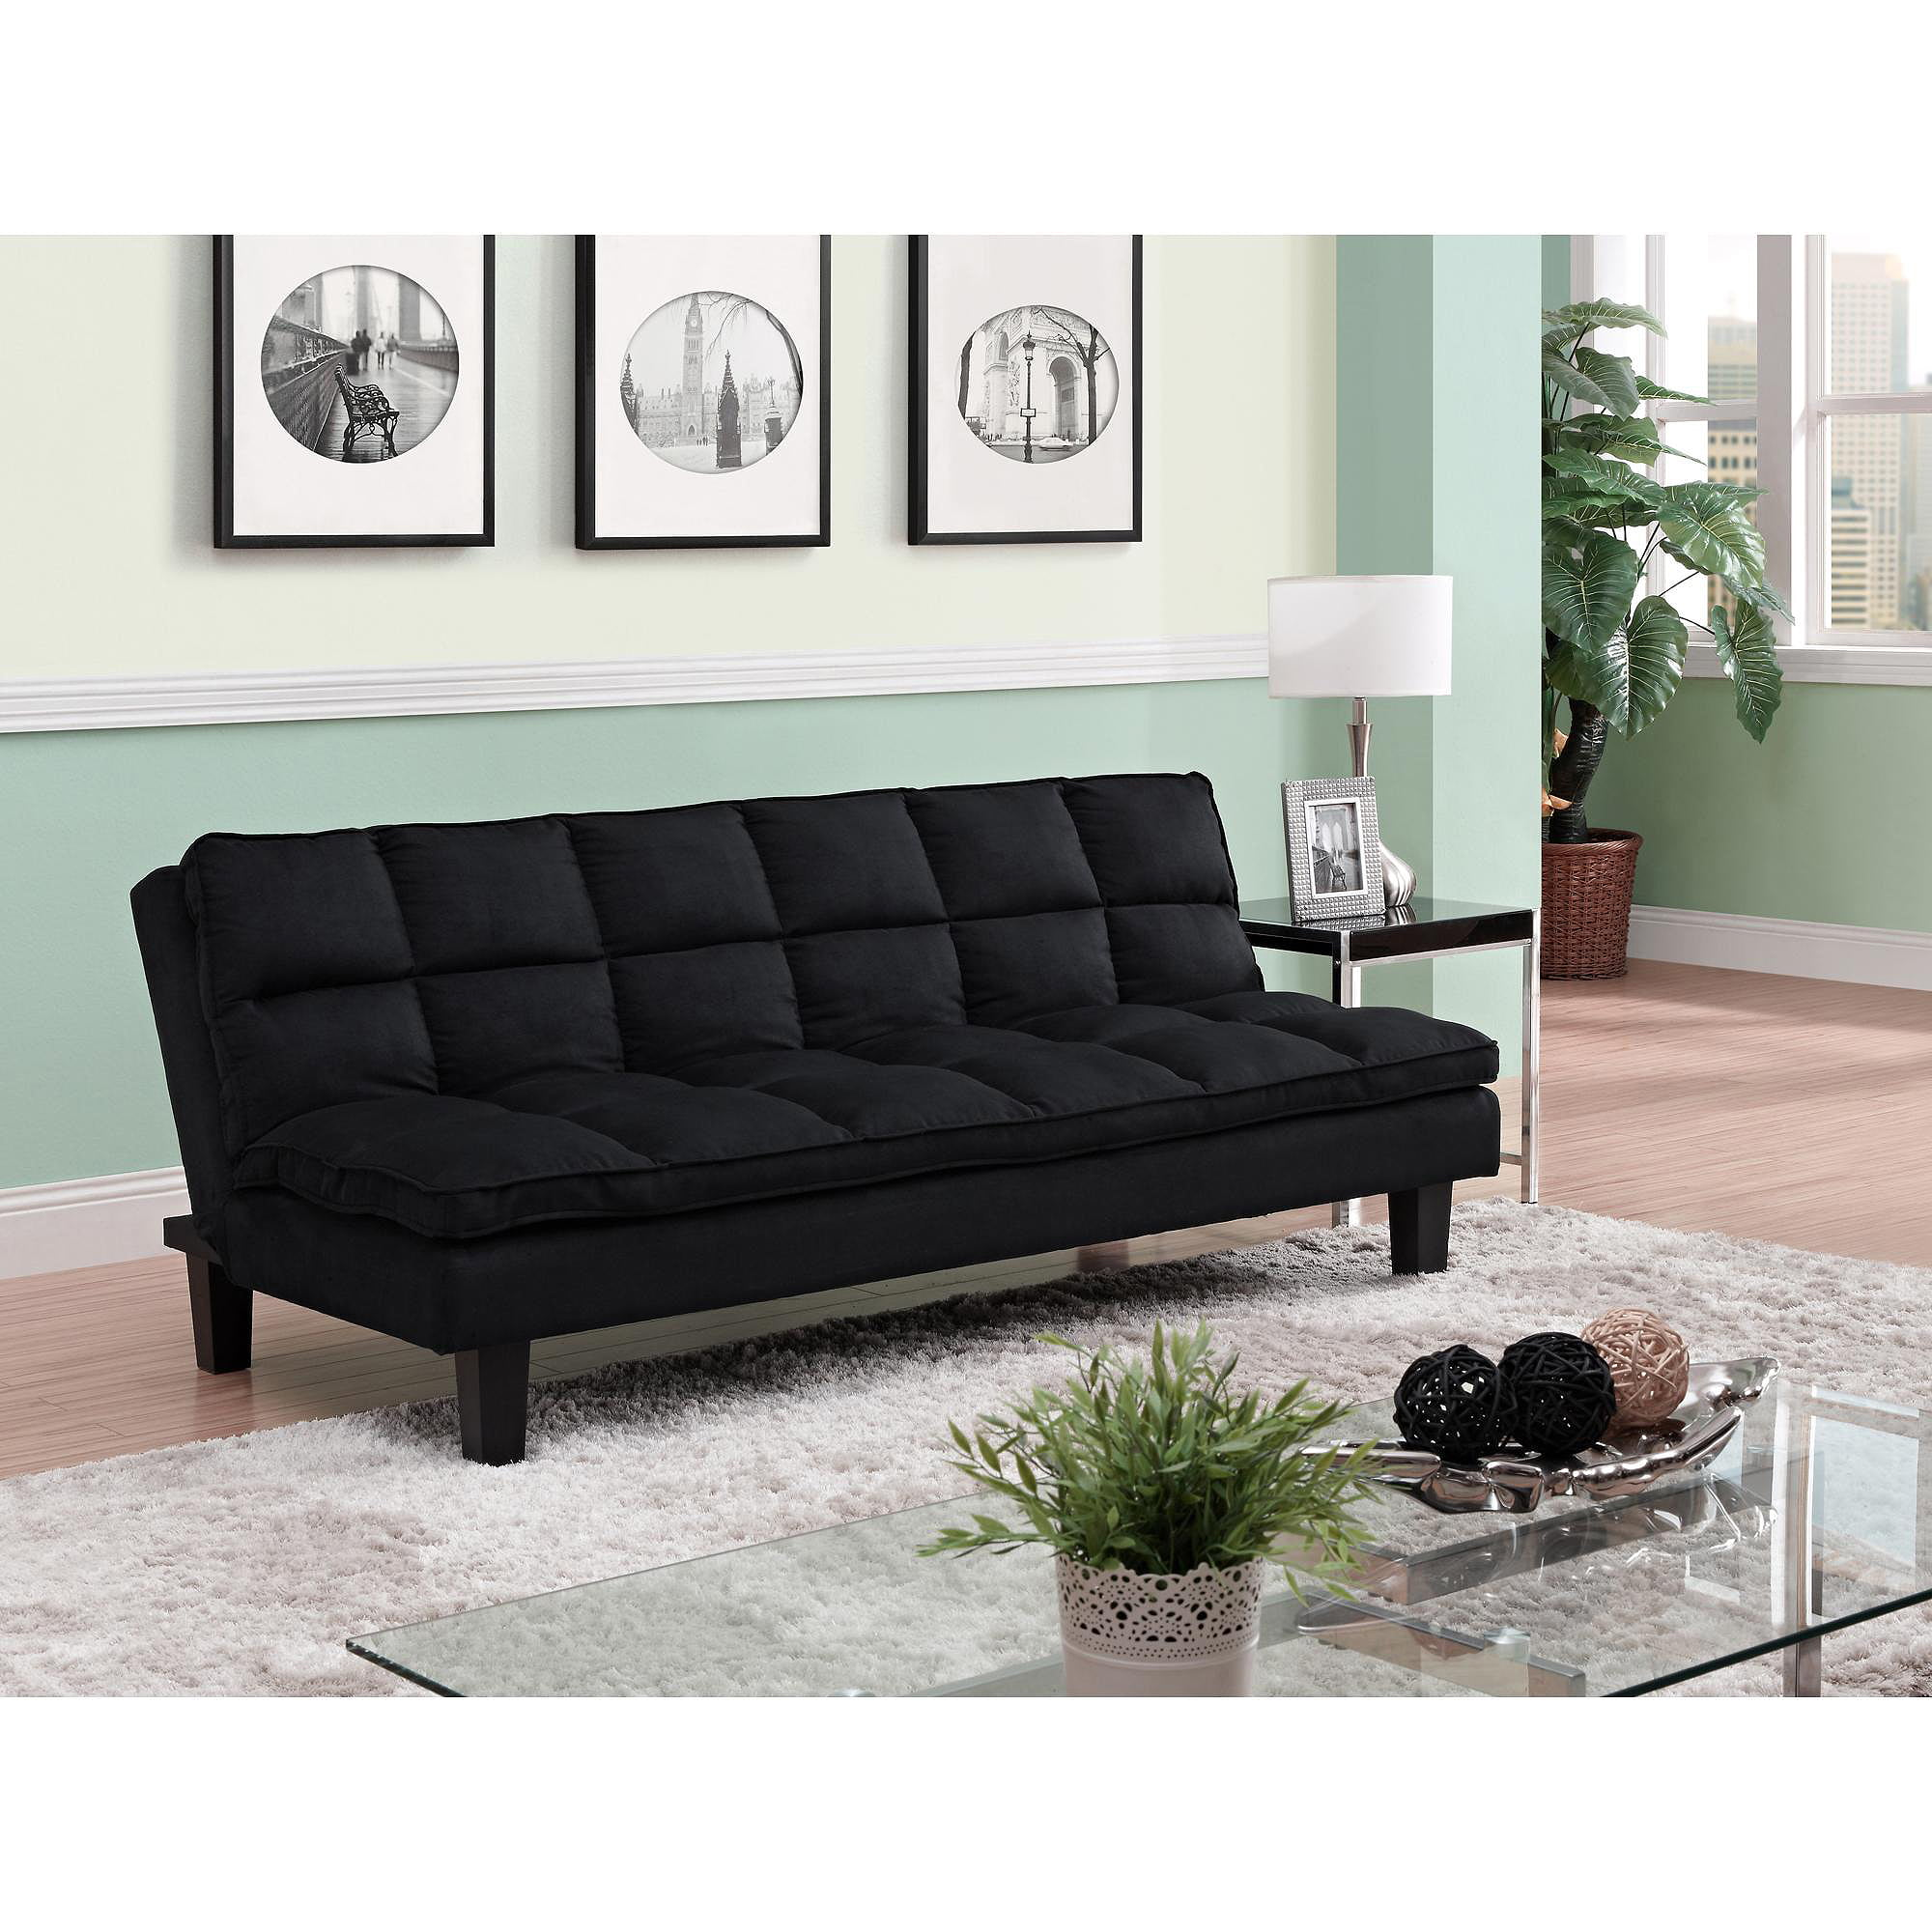 pcok w futon bdae office couch co